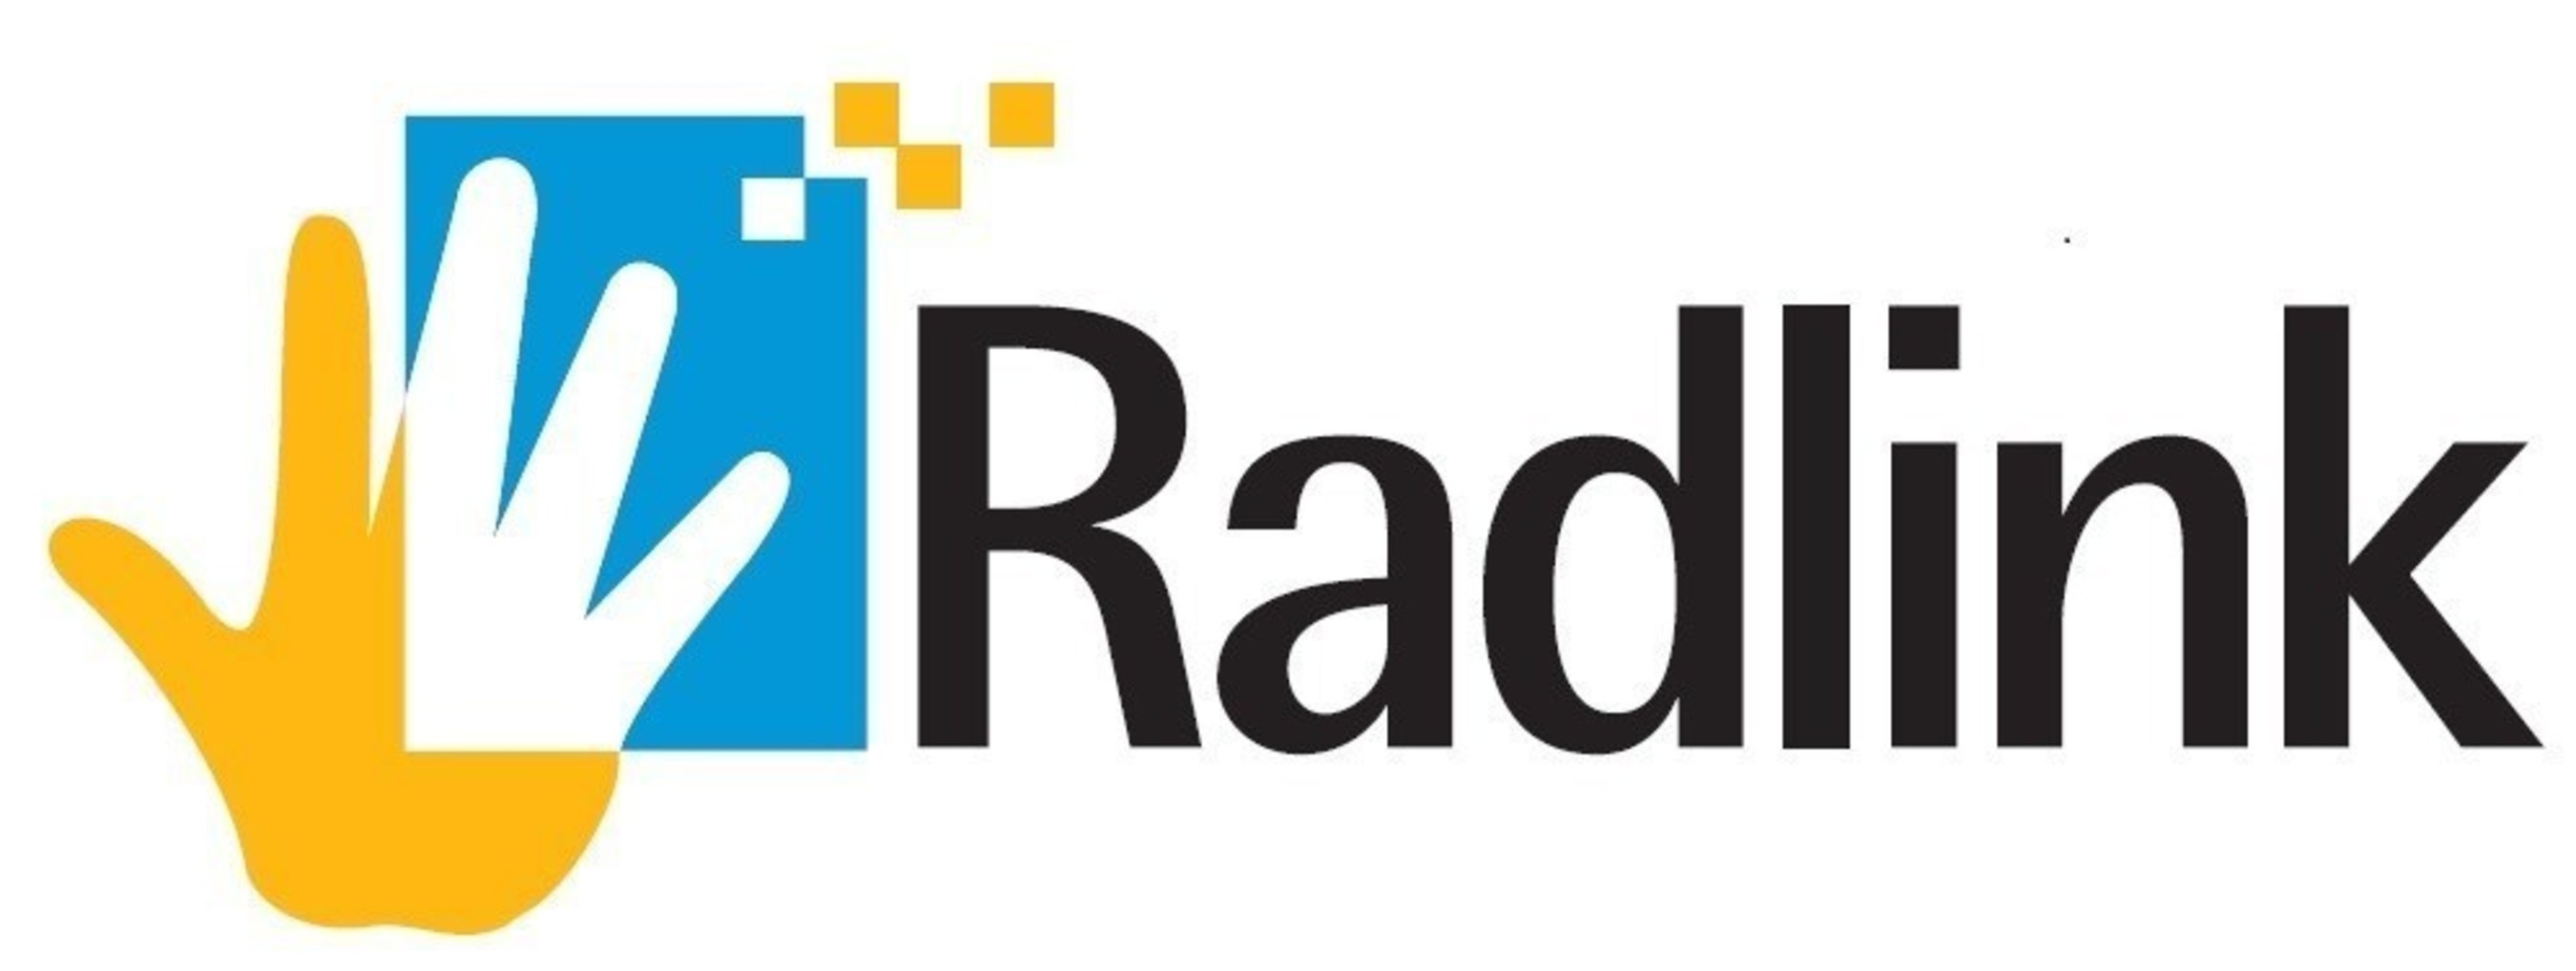 Radlink, Inc. Announces Exclusive Sales Agency Agreement with Johnson & Johnson Subsidiary DePuy Synthes Companies